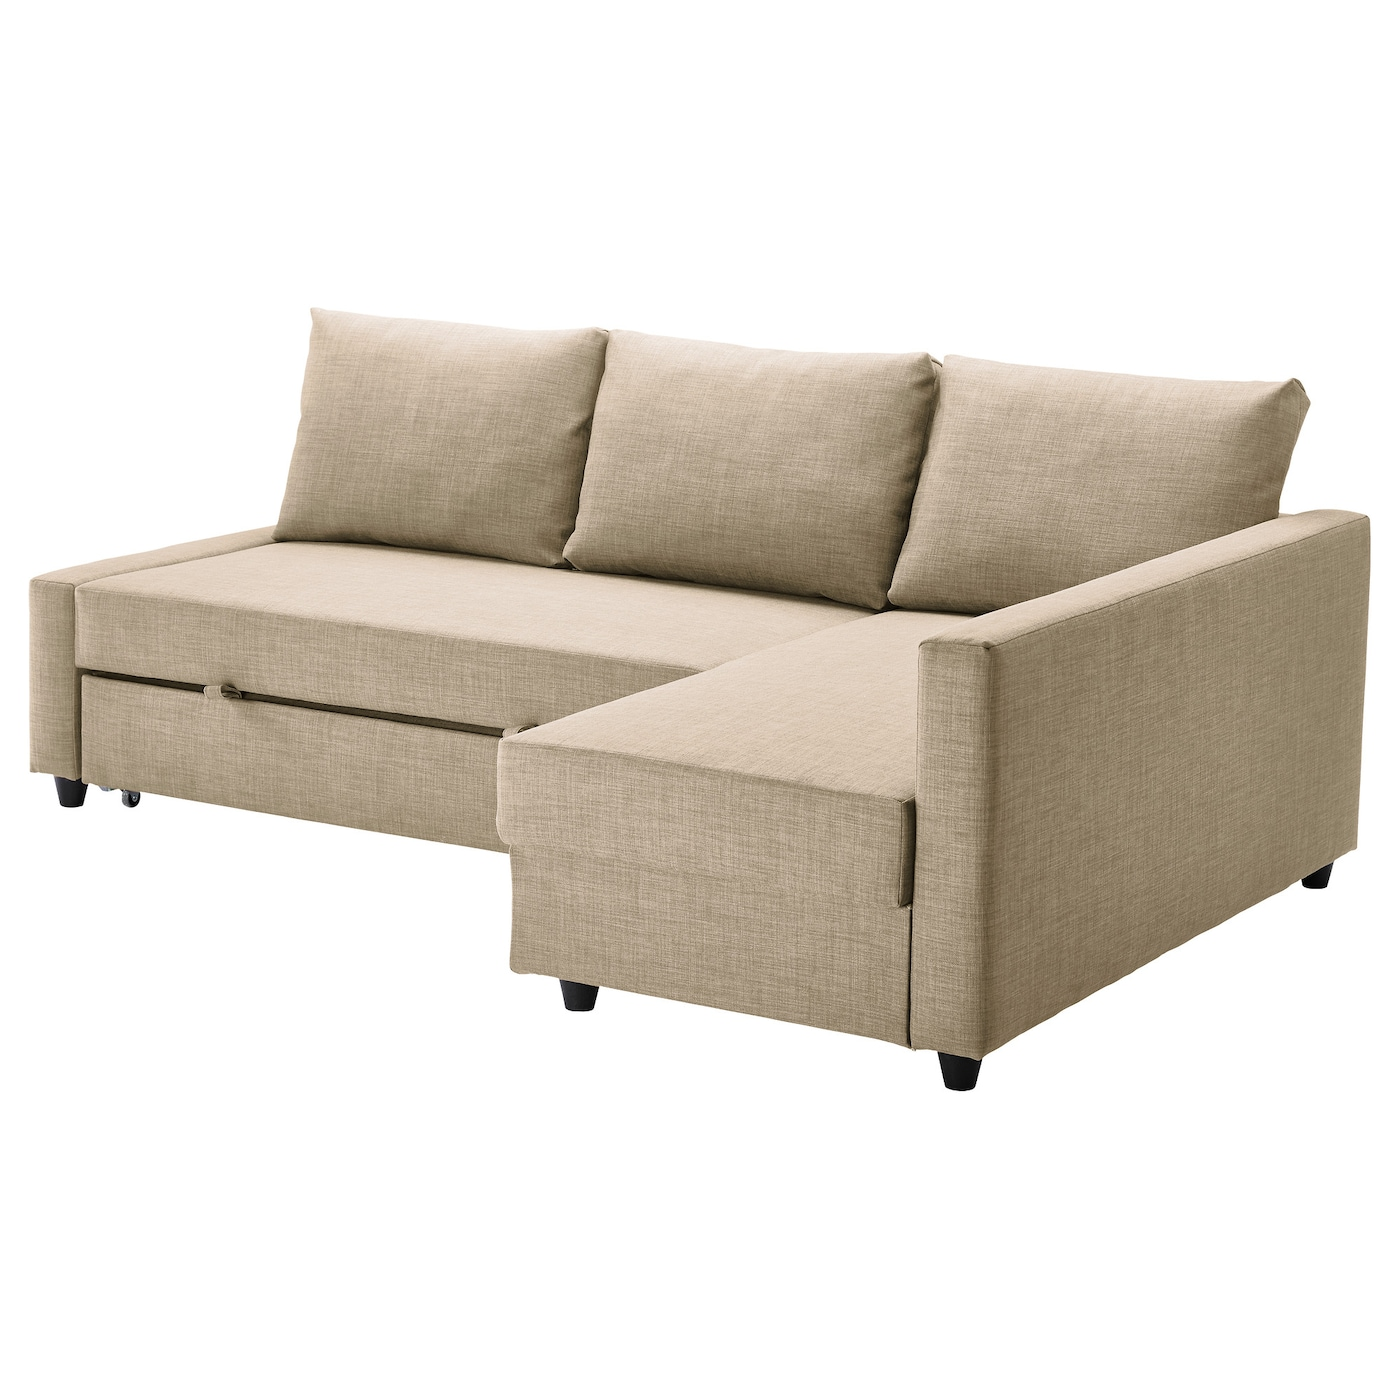 Friheten corner sofa bed with storage skiftebo beige ikea for Ikea corner sofa